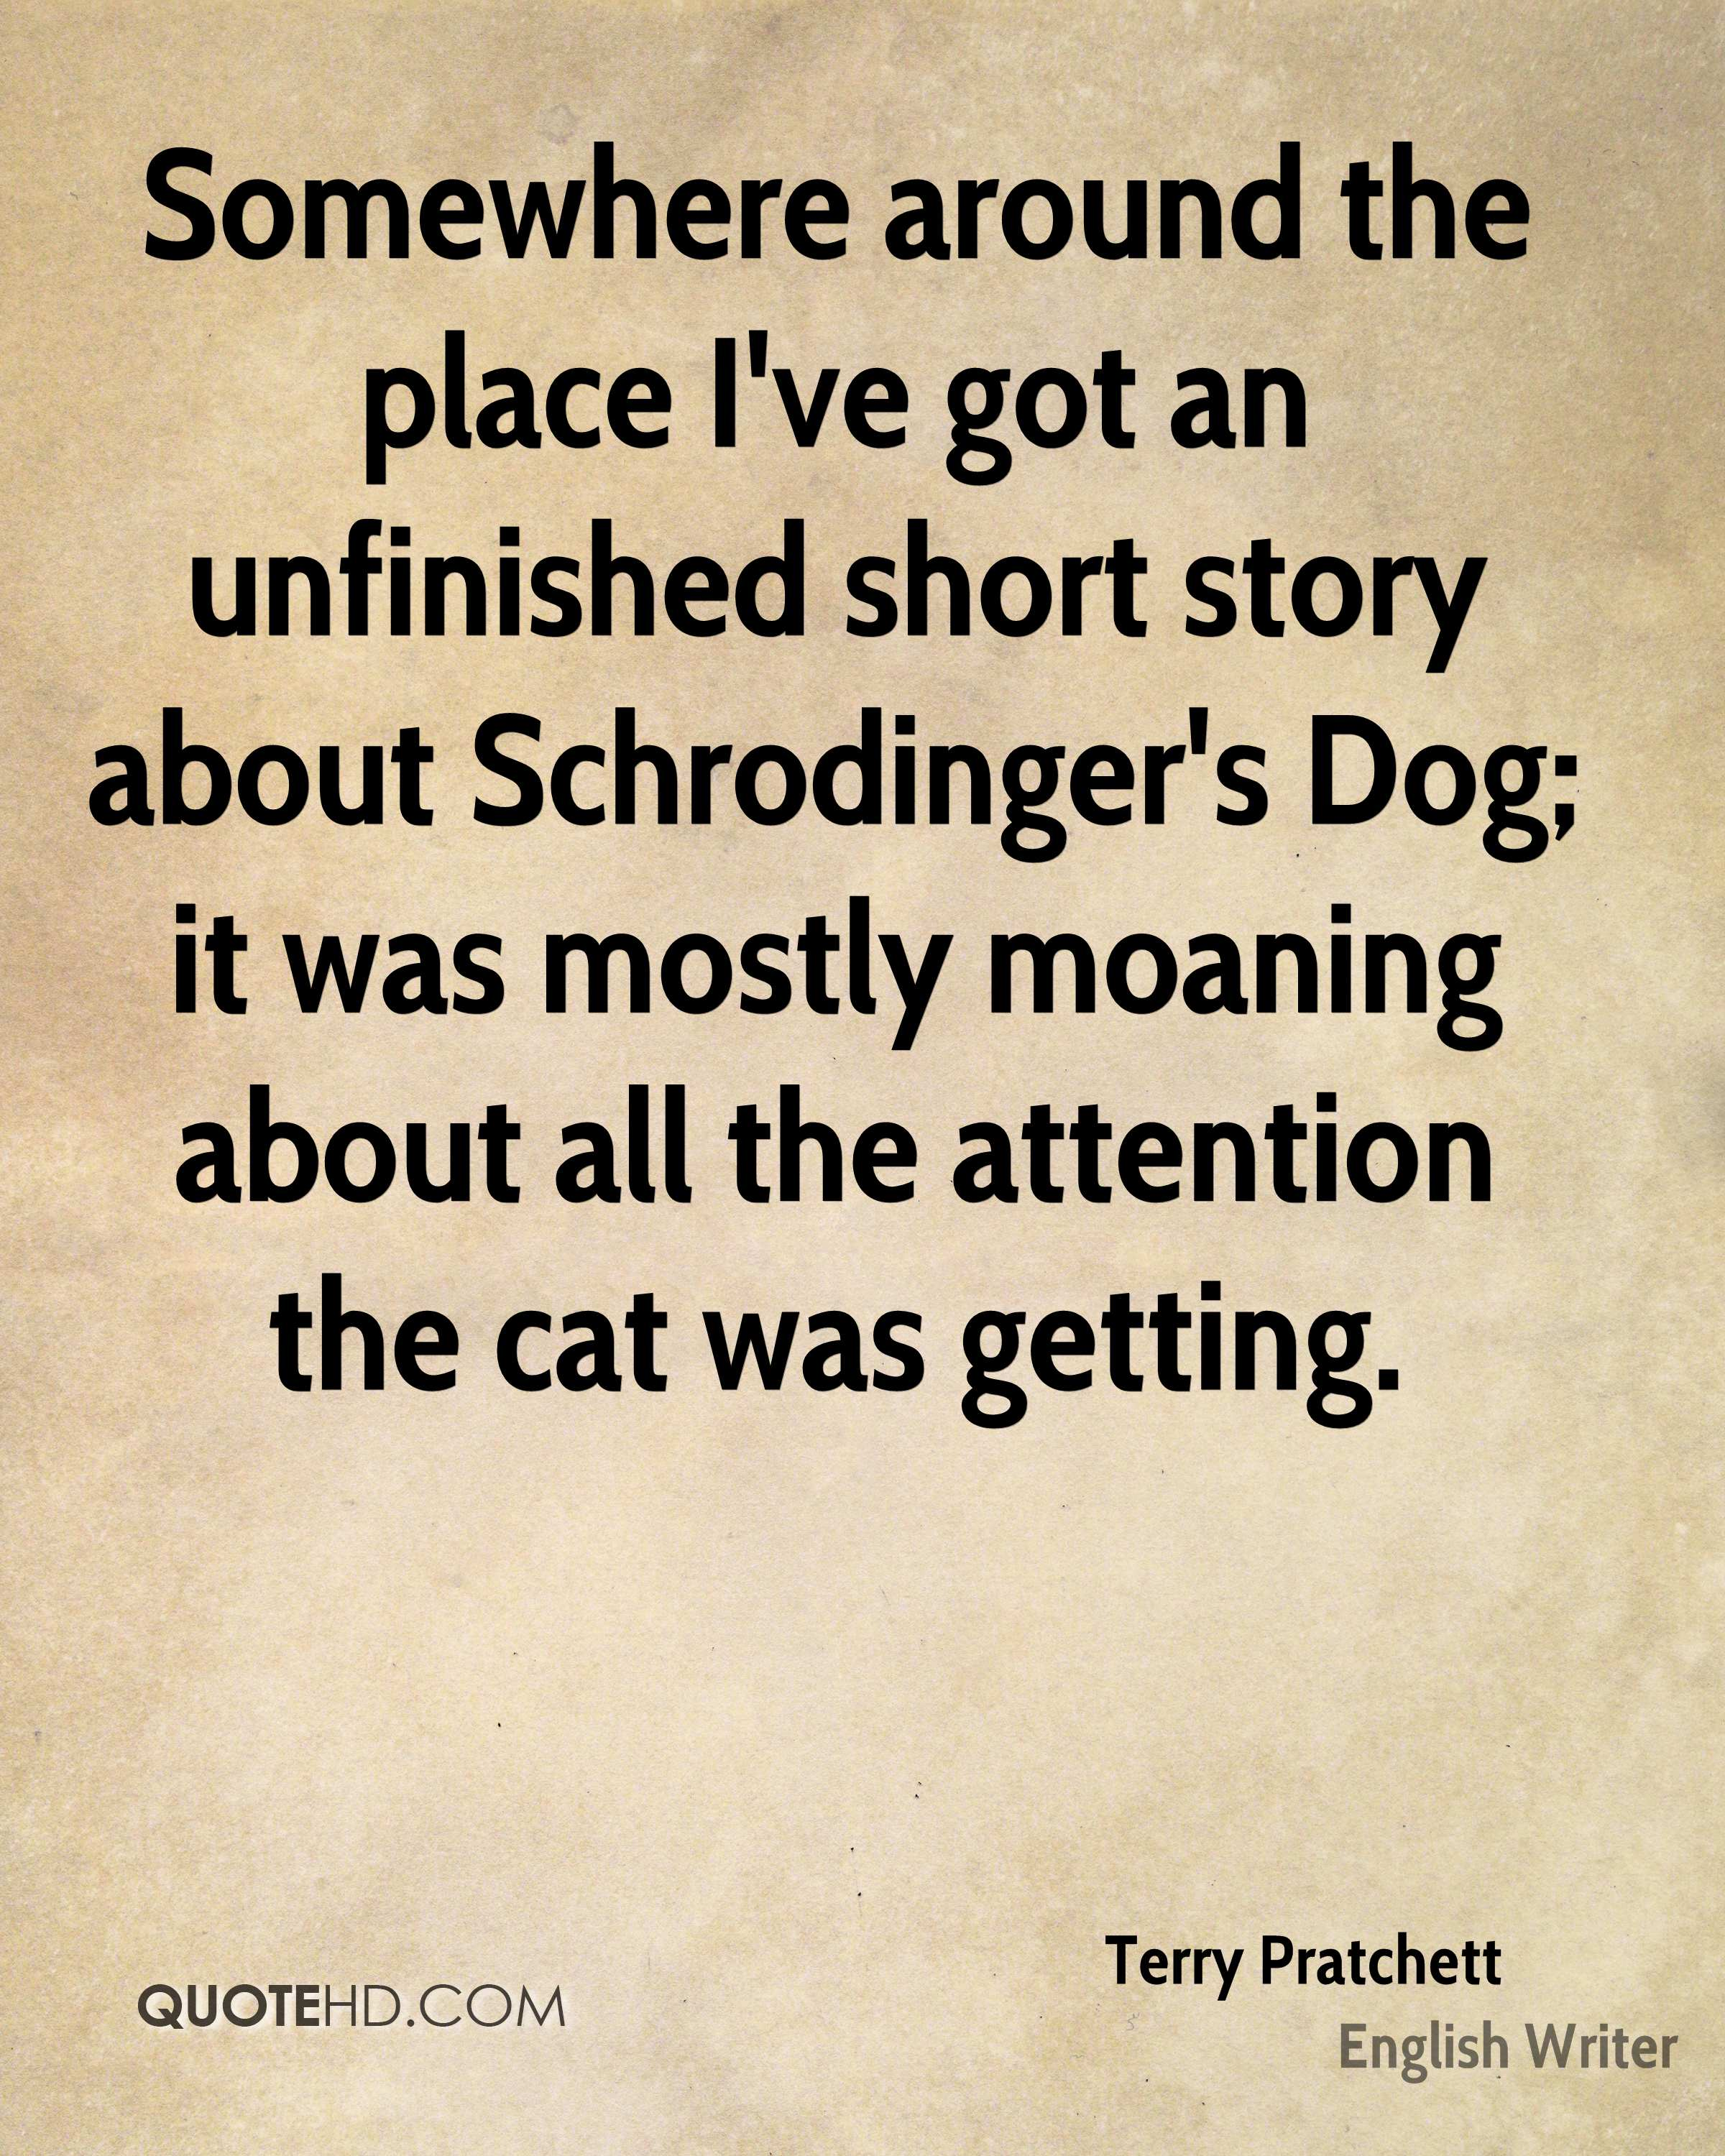 Somewhere around the place I've got an unfinished short story about Schrodinger's Dog; it was mostly moaning about all the attention the cat was getting.